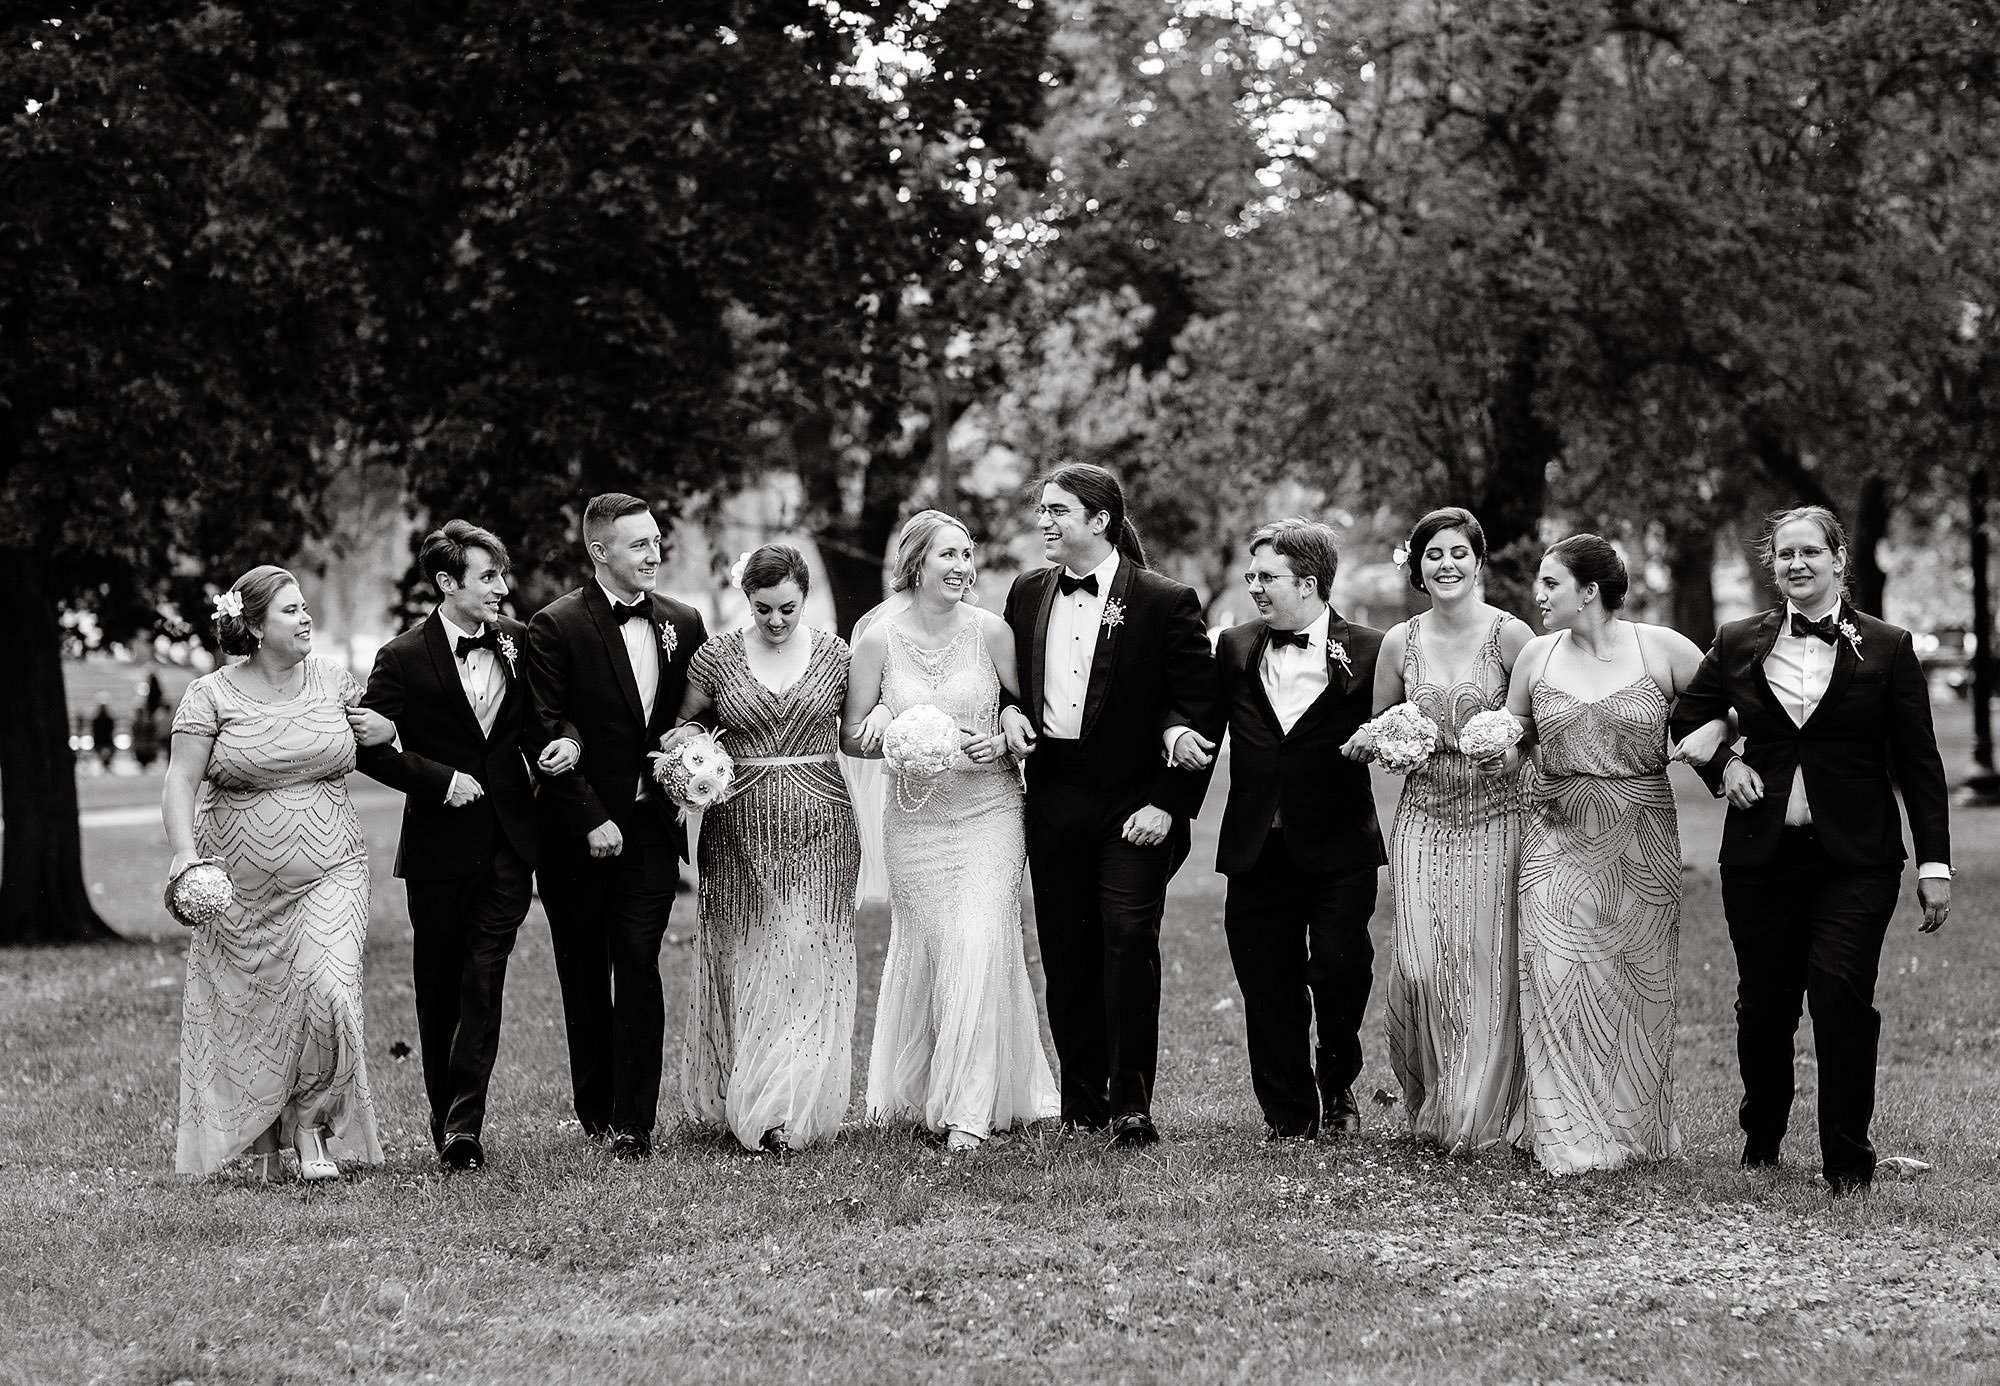 The wedding party in Boston's Public Garden.